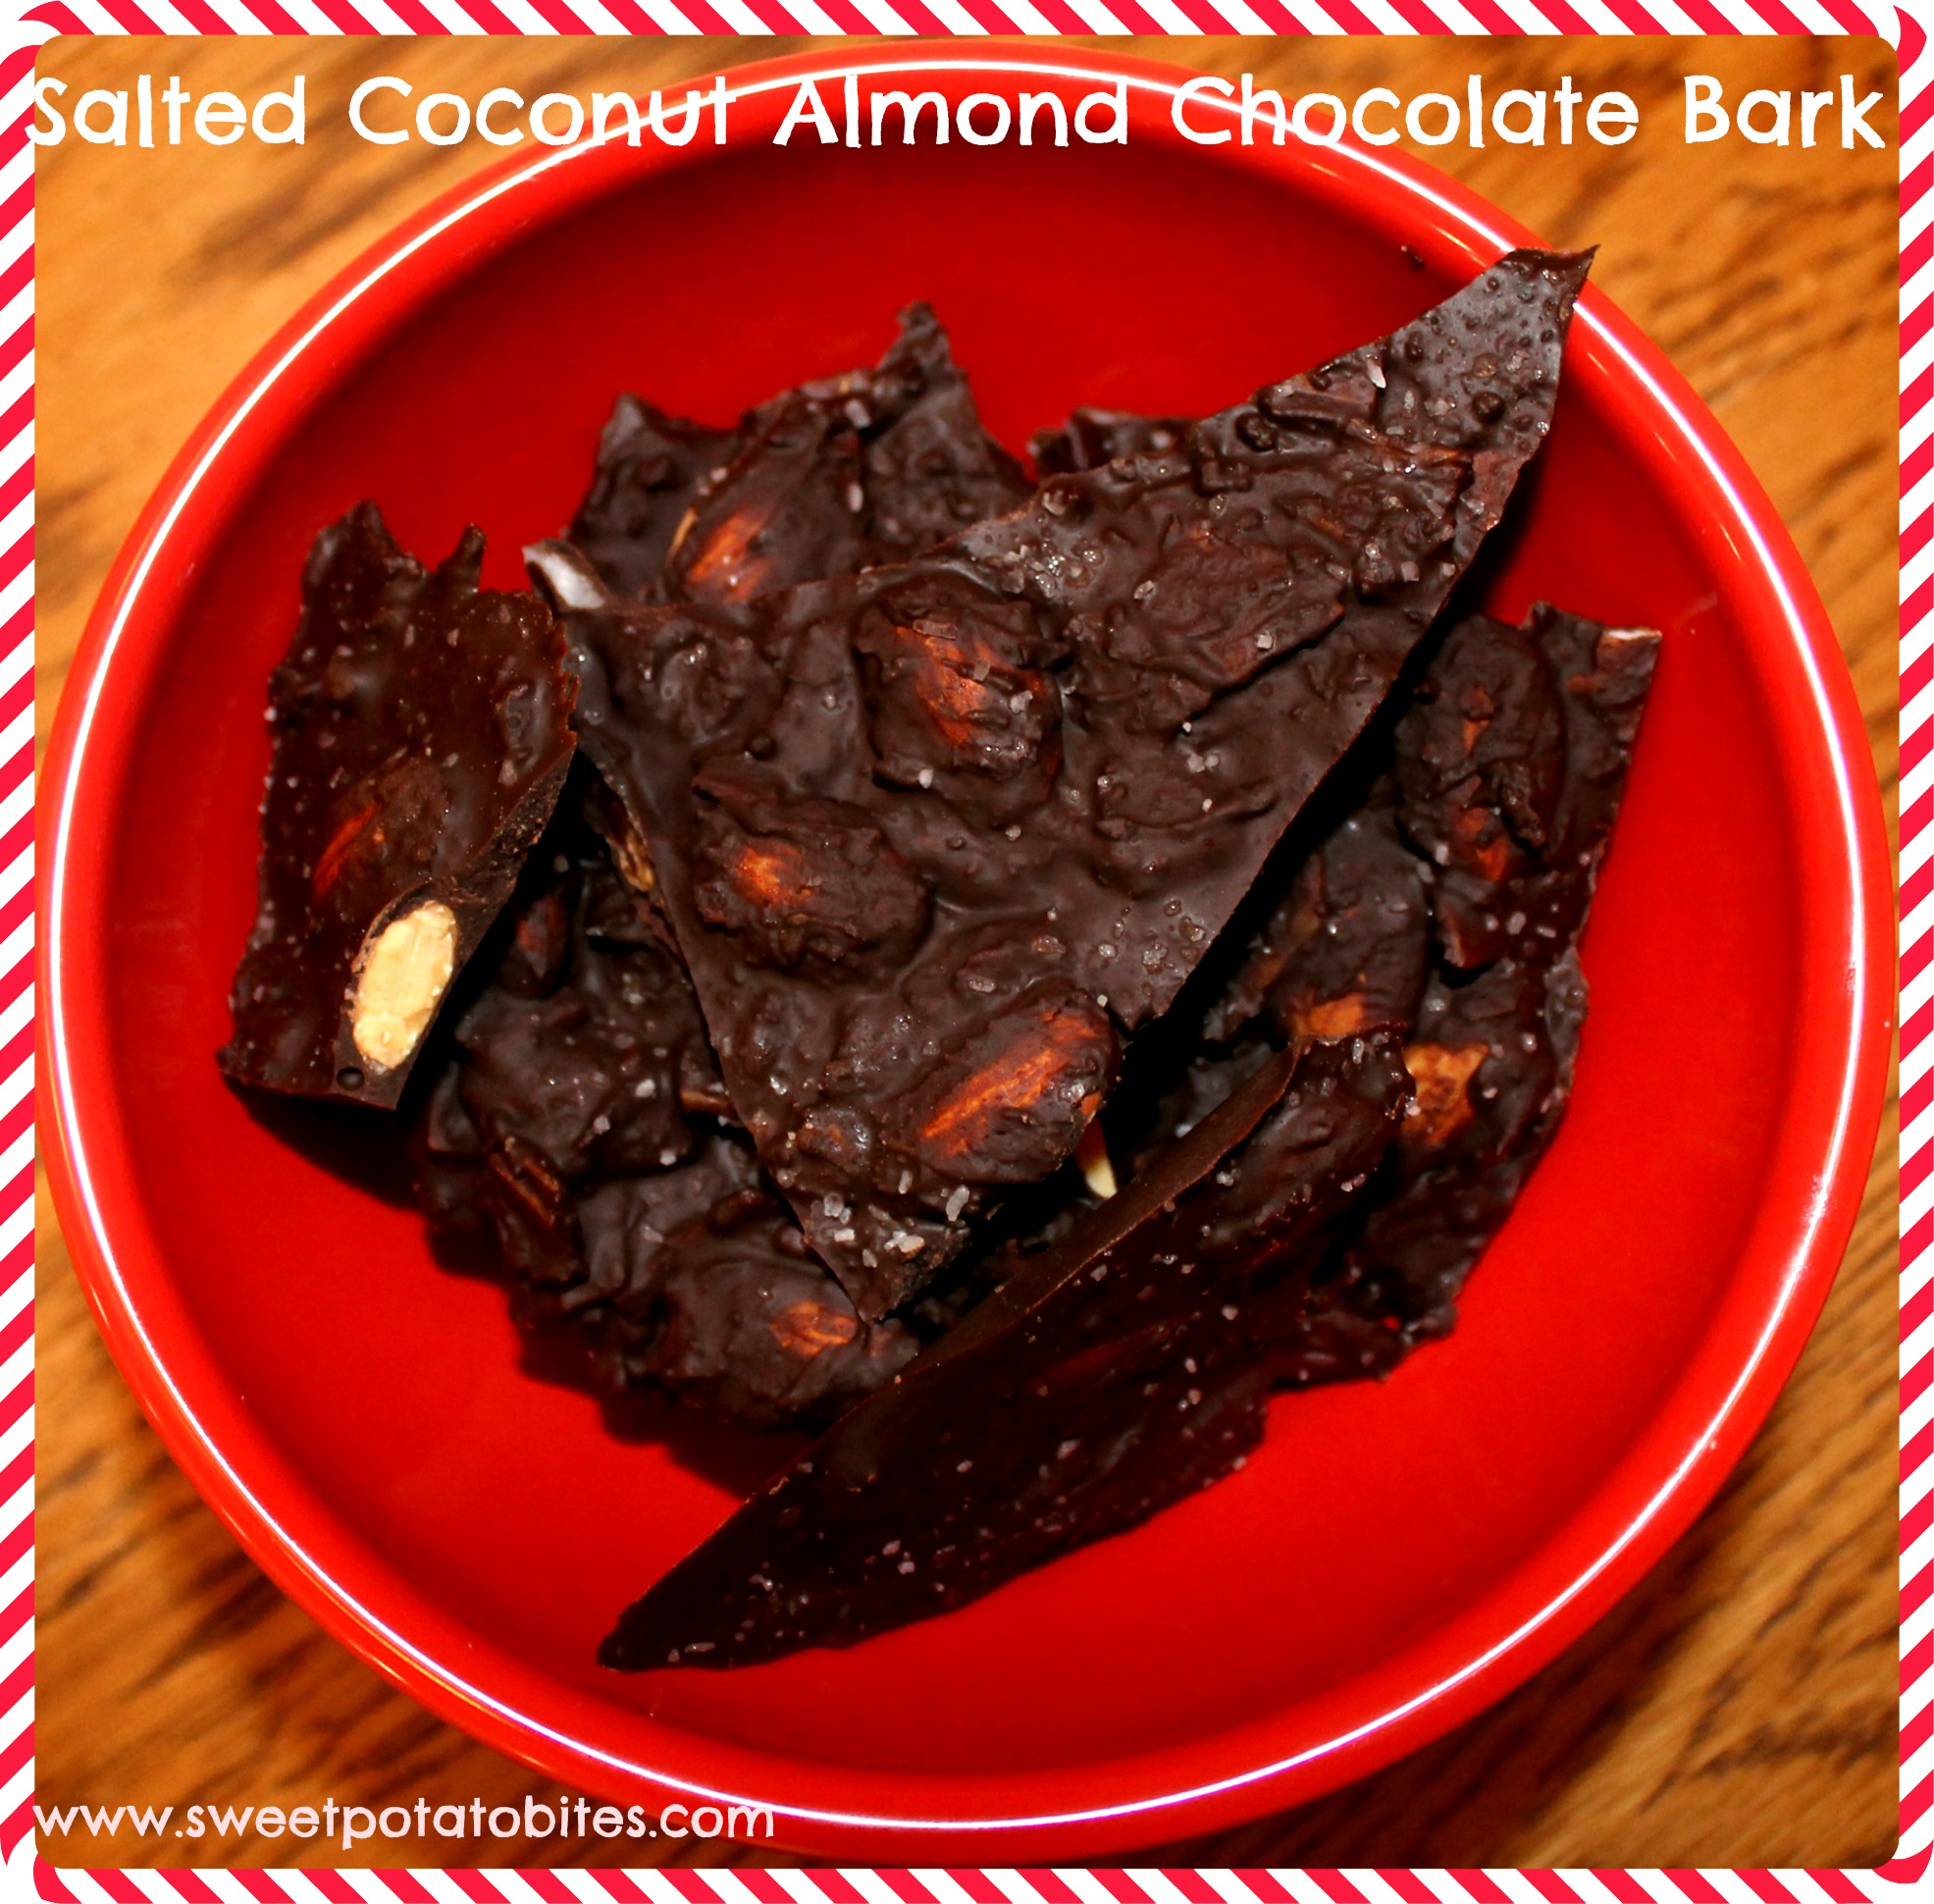 Salted Coconut Almond Chocolate Bark